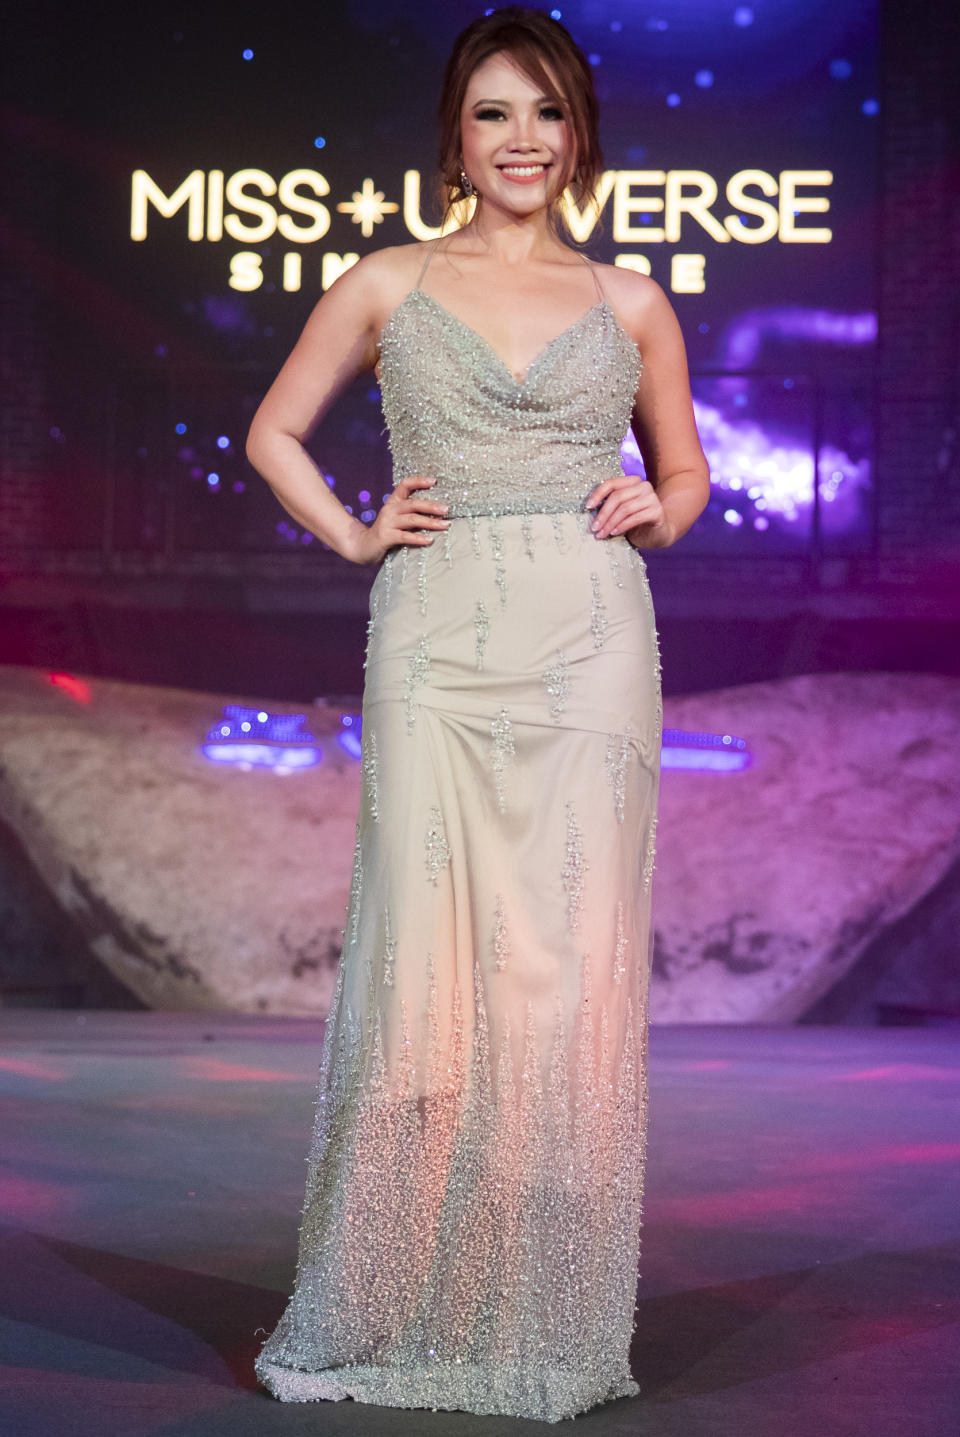 Nerrine Ng competing in the evening gown segment during the 2019 Miss Universe Singapore at Zouk.